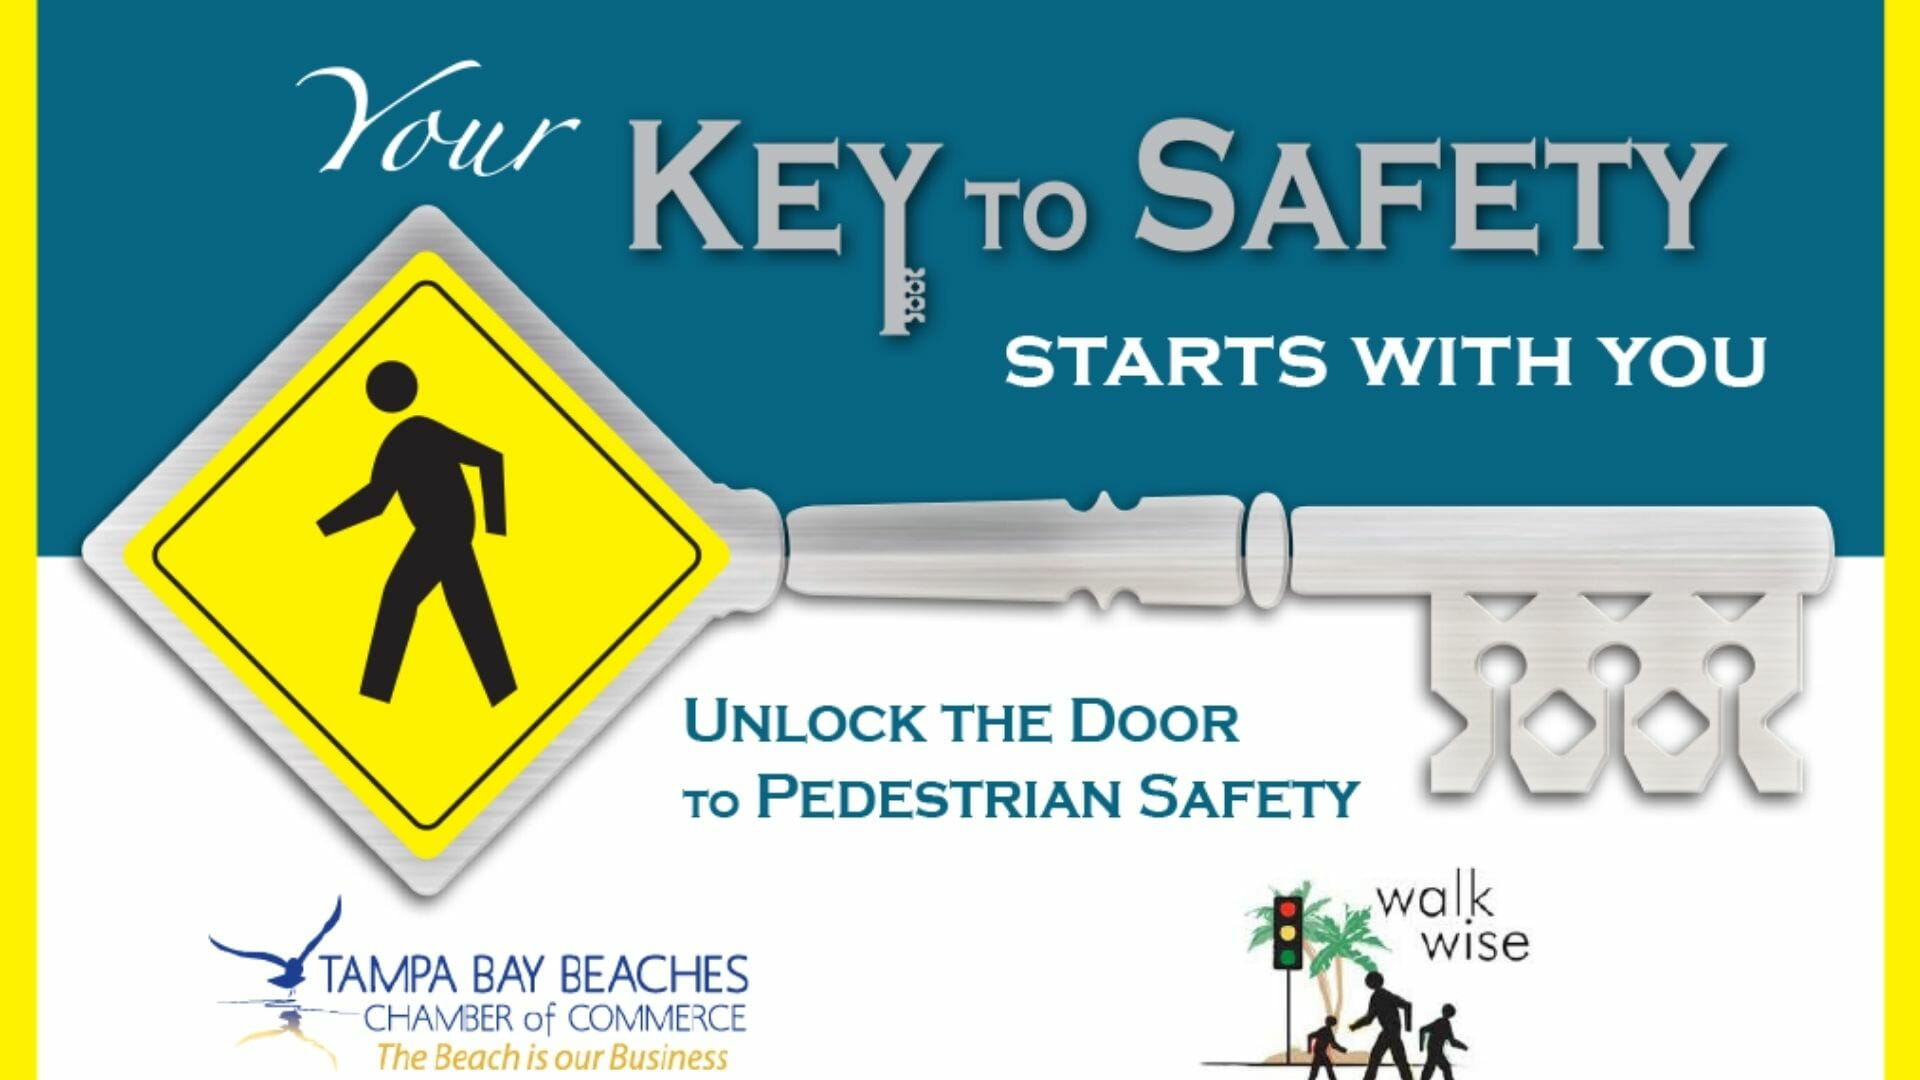 Key To Saftey - Tampa Bay Beaches Chamber of Commerce